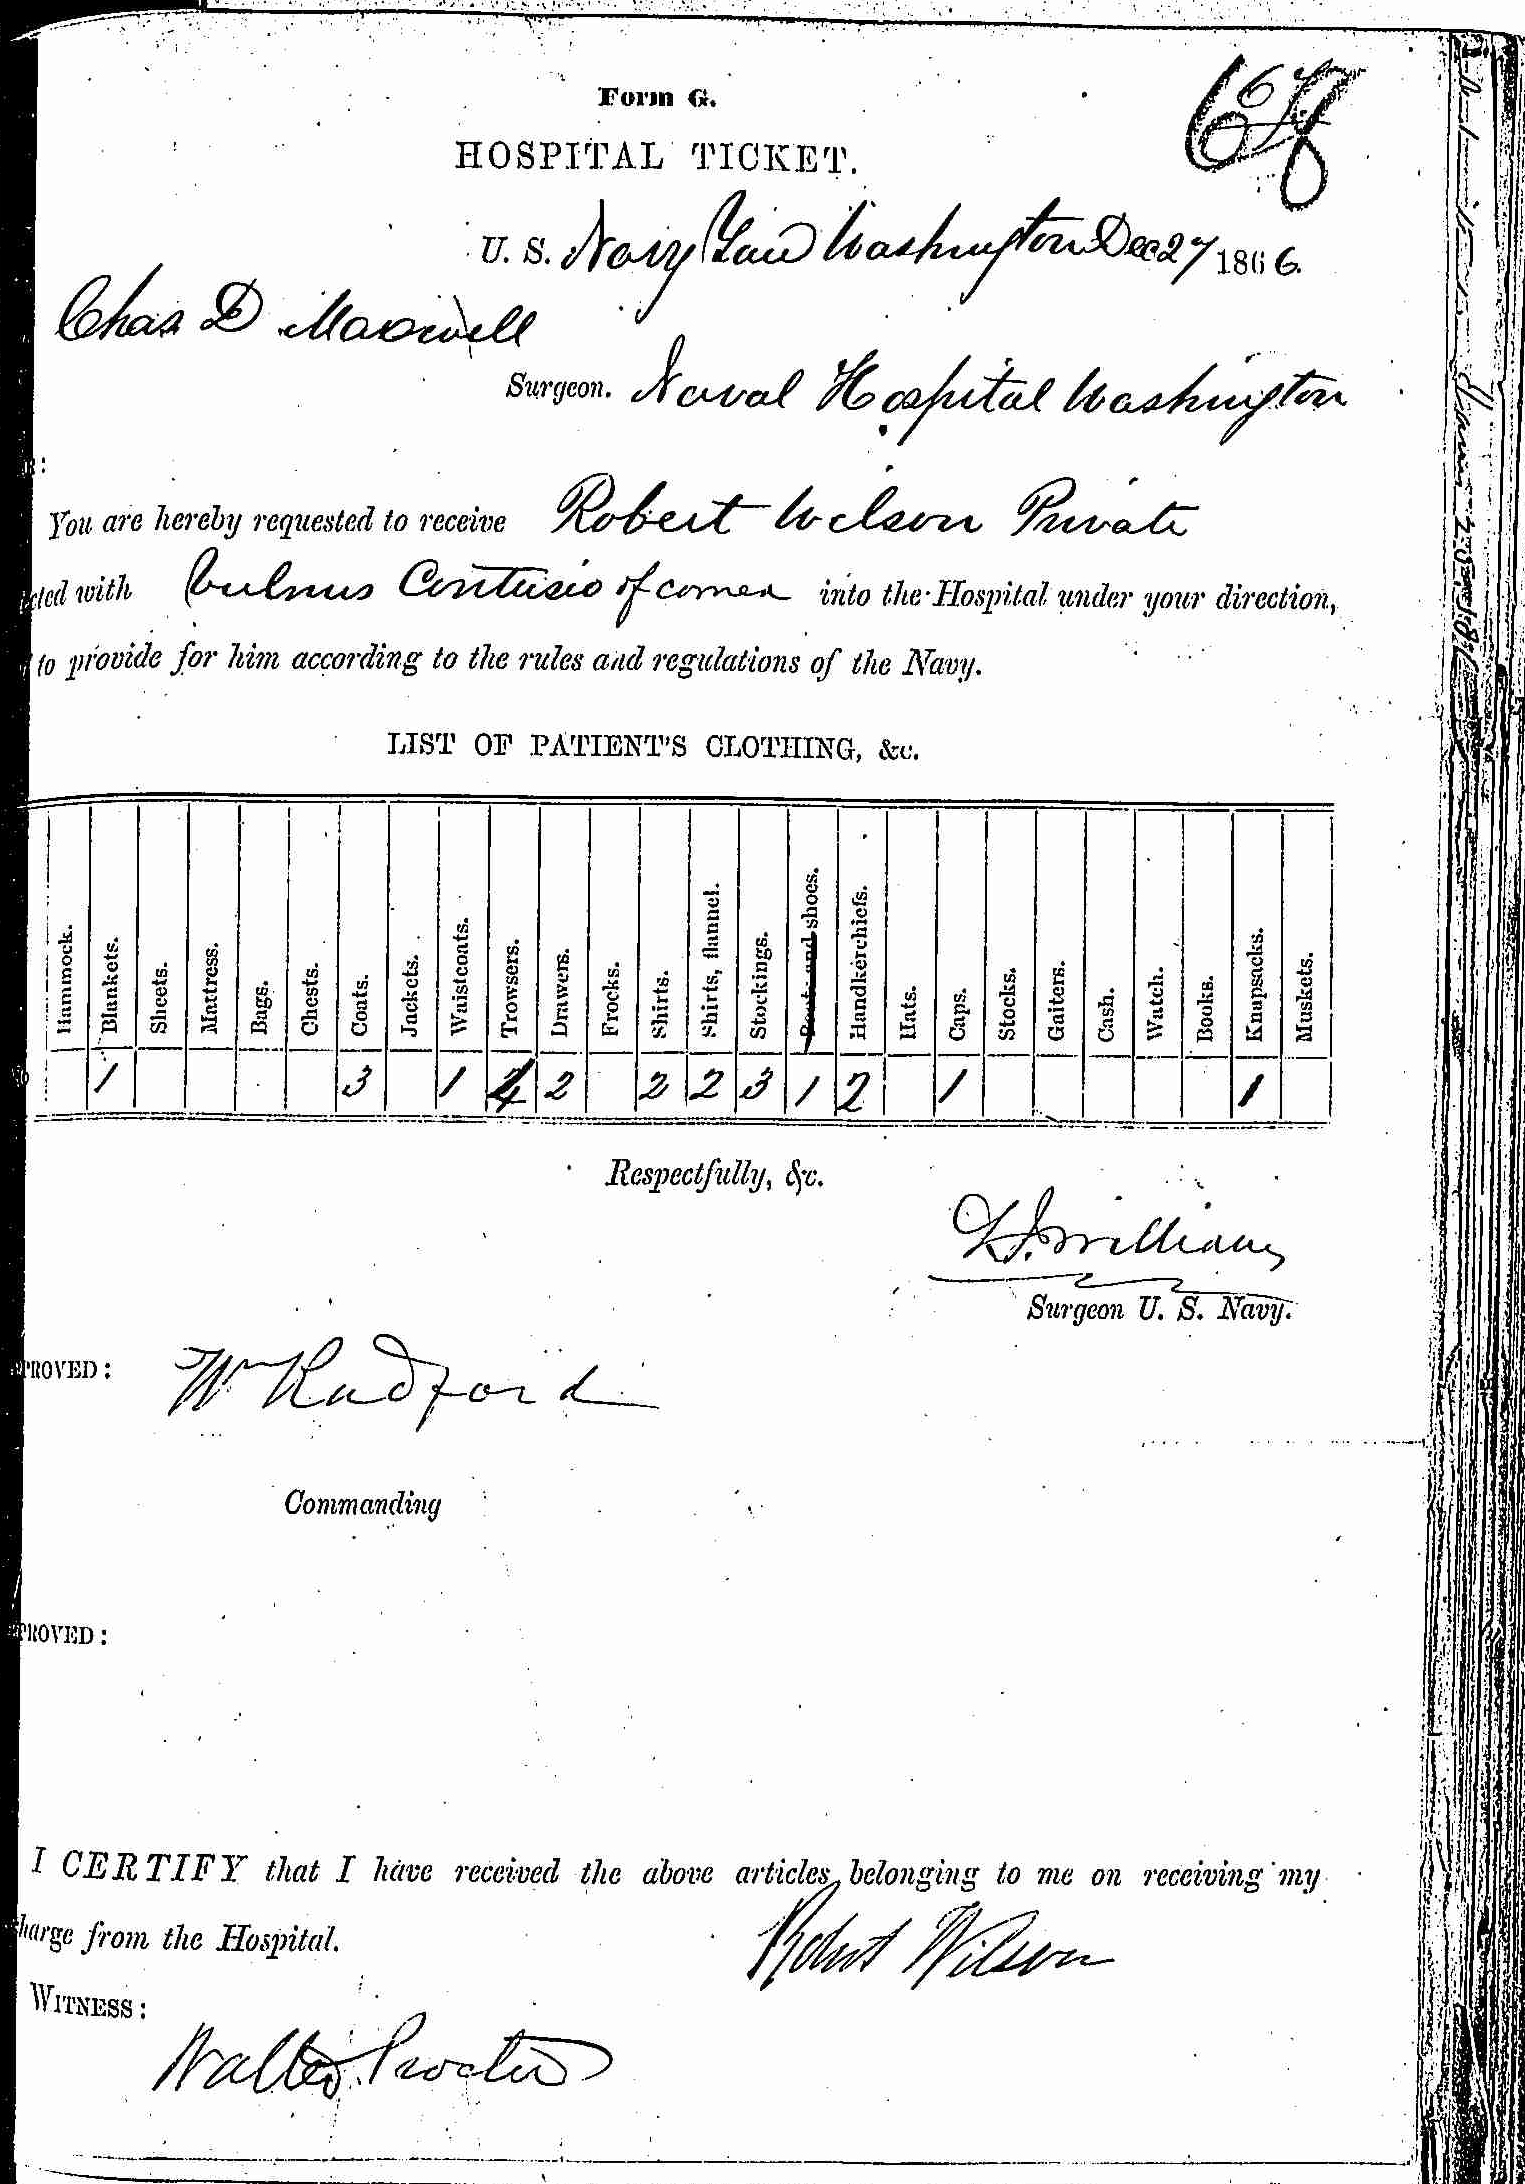 Entry for Robert Wilson (page 1 of 2) in the log Hospital Tickets and Case Papers - Naval Hospital - Washington, D.C. - 1865-68